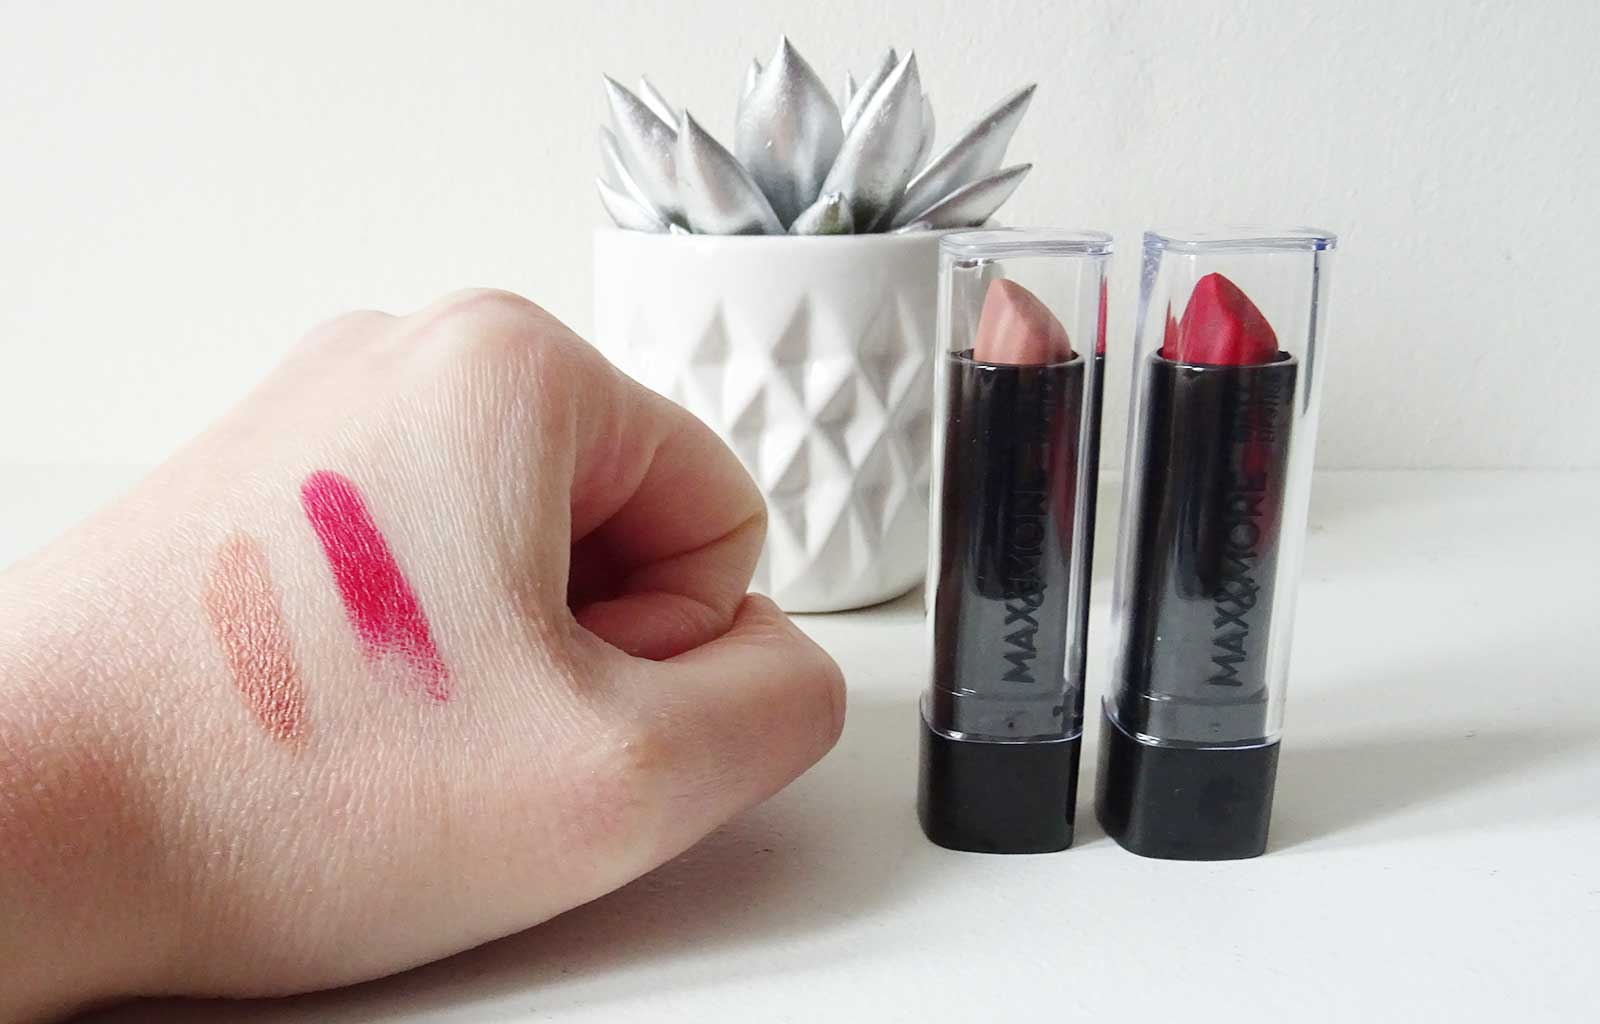 Matt Lipsticks Max & More swatches